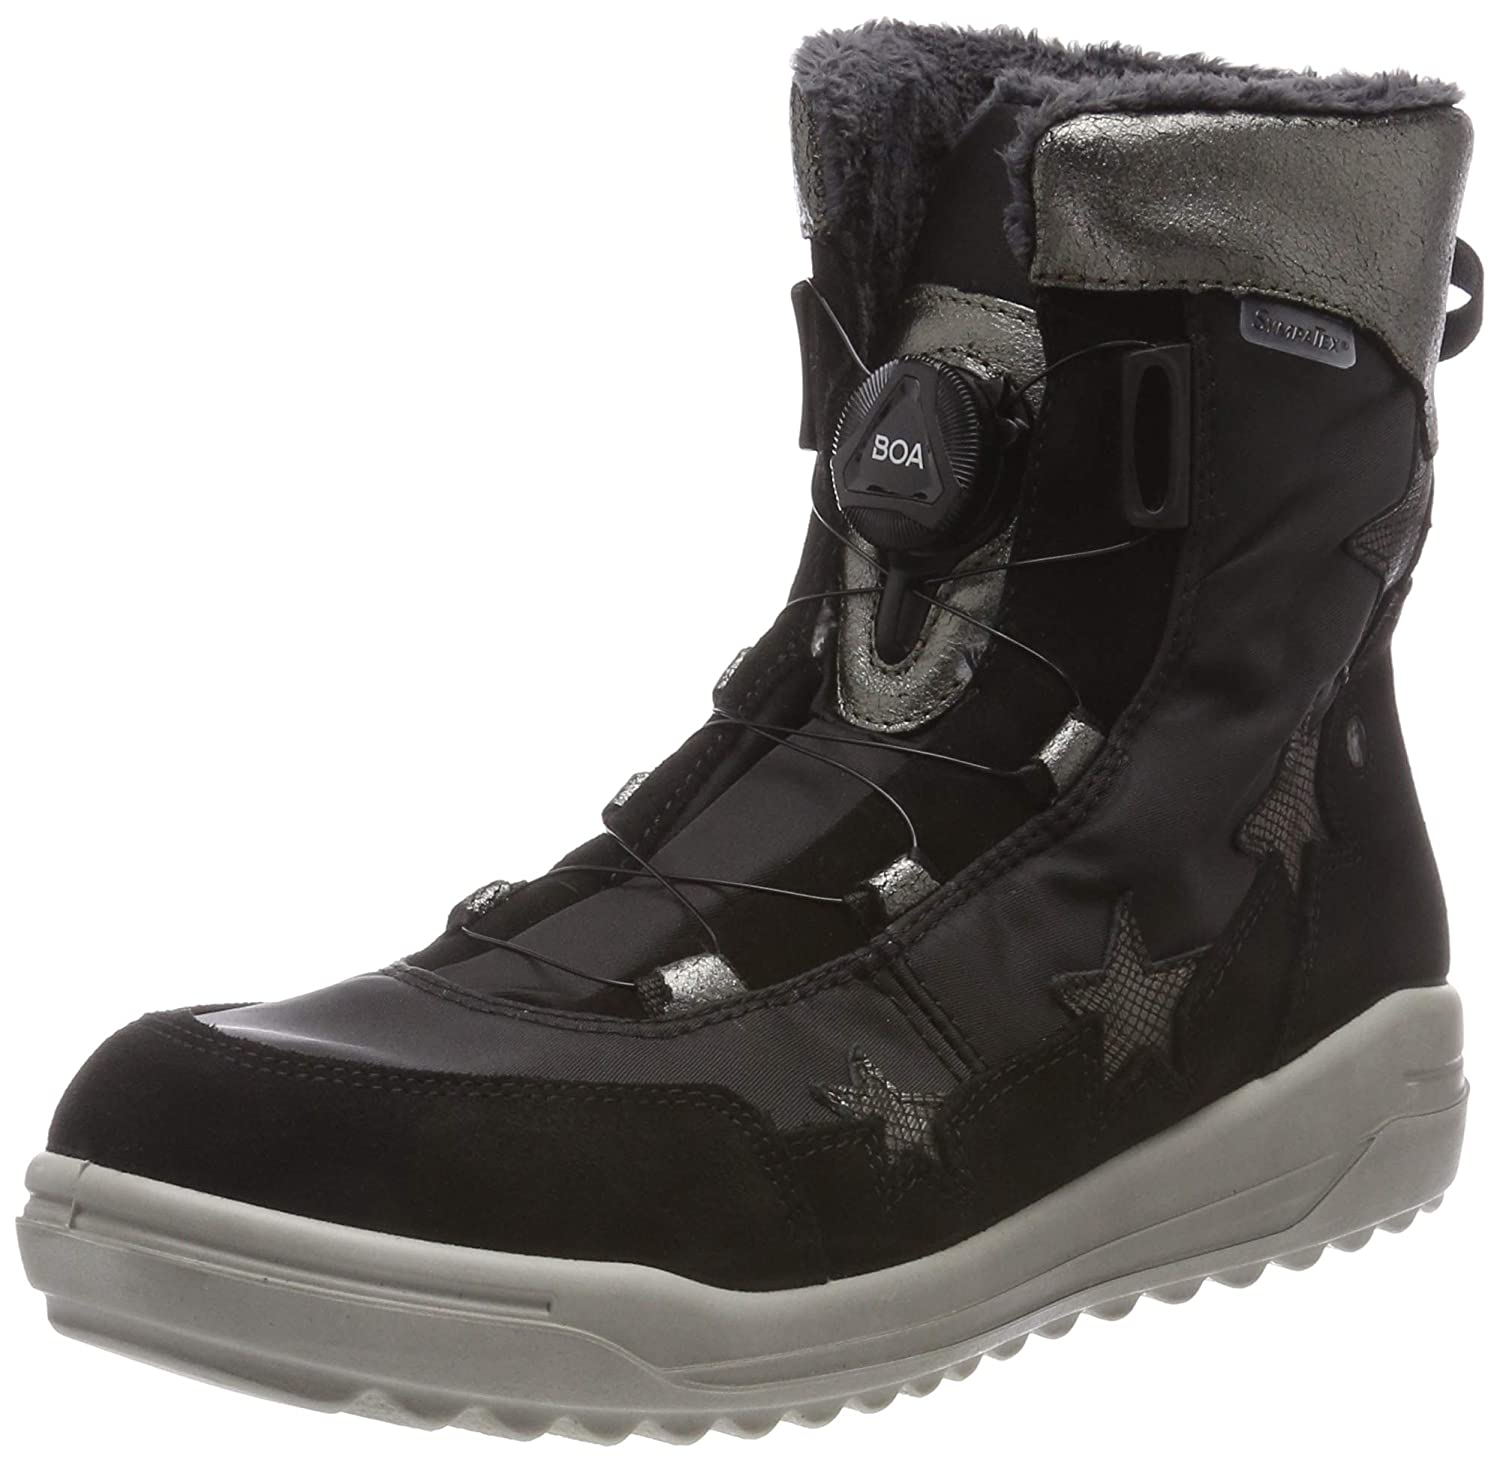 on sale 7633c 0808e RICOSTA Girls' Sanja Snow Boots: Amazon.co.uk: Shoes & Bags